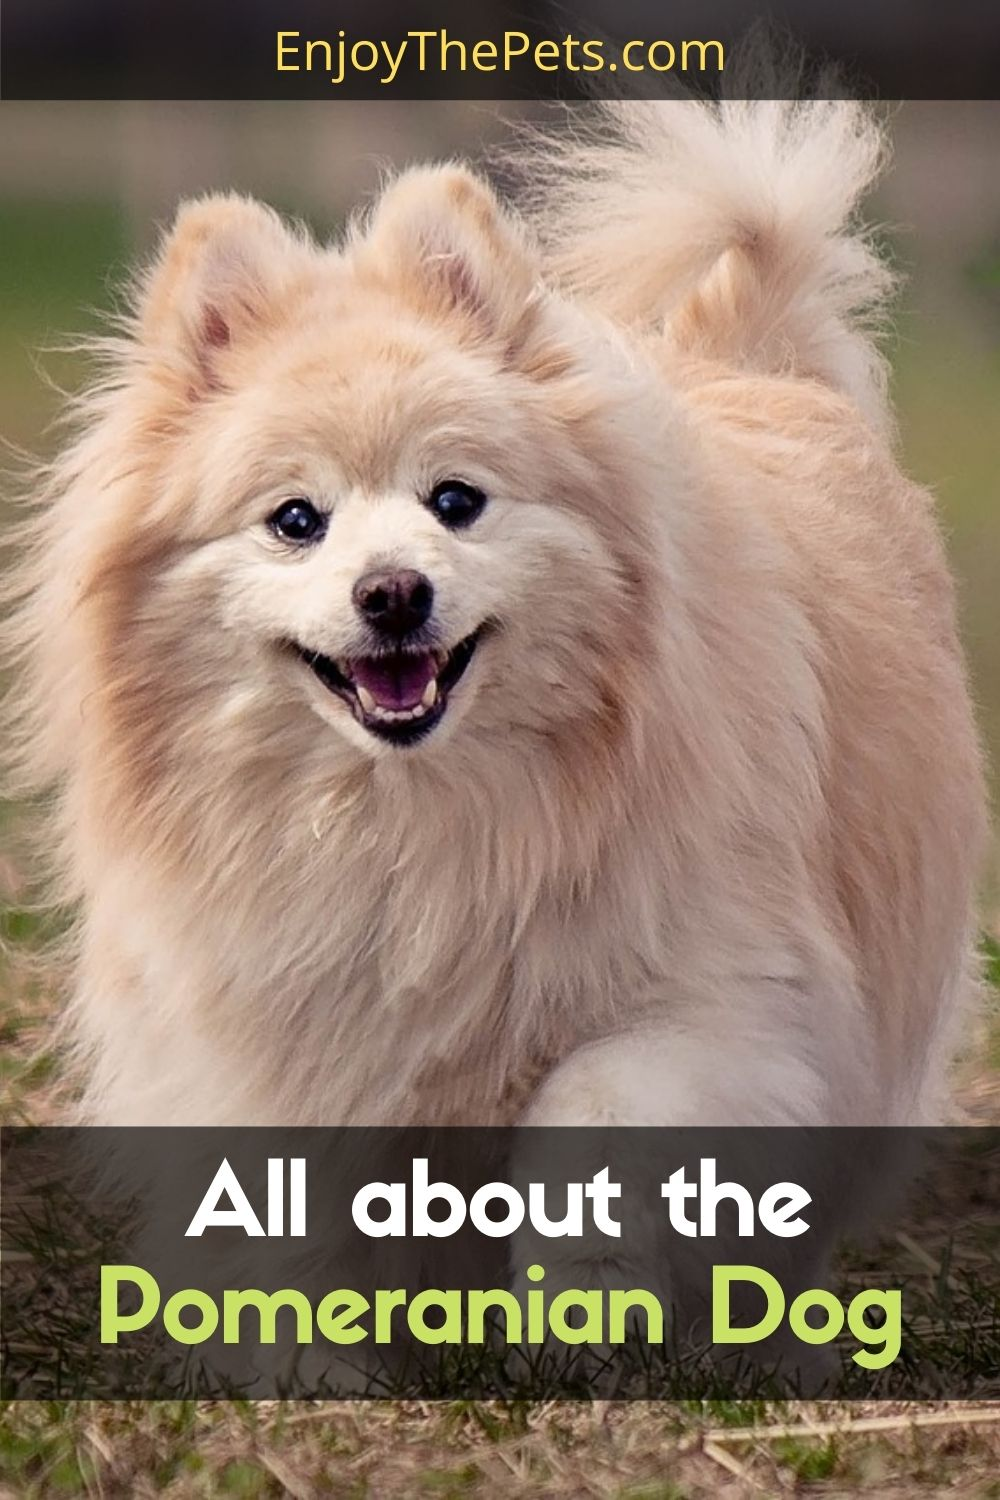 All about the Pomeranian Dog